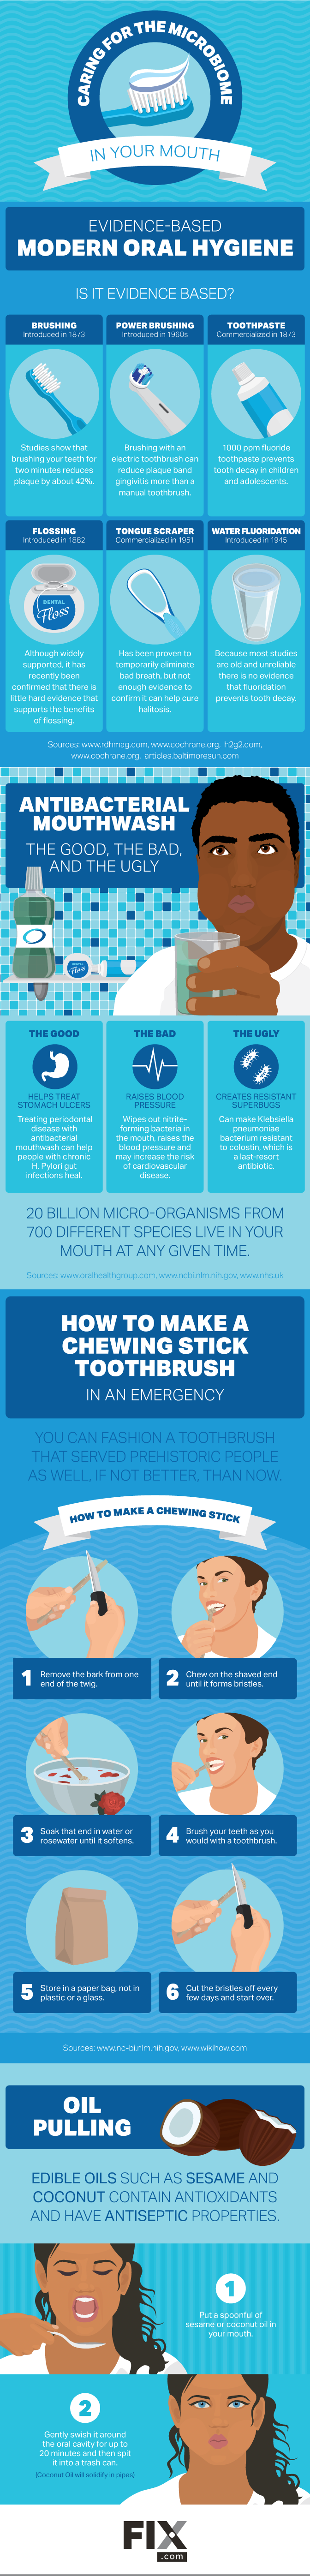 Caring for the Microbiome in Your Mouth #infographic